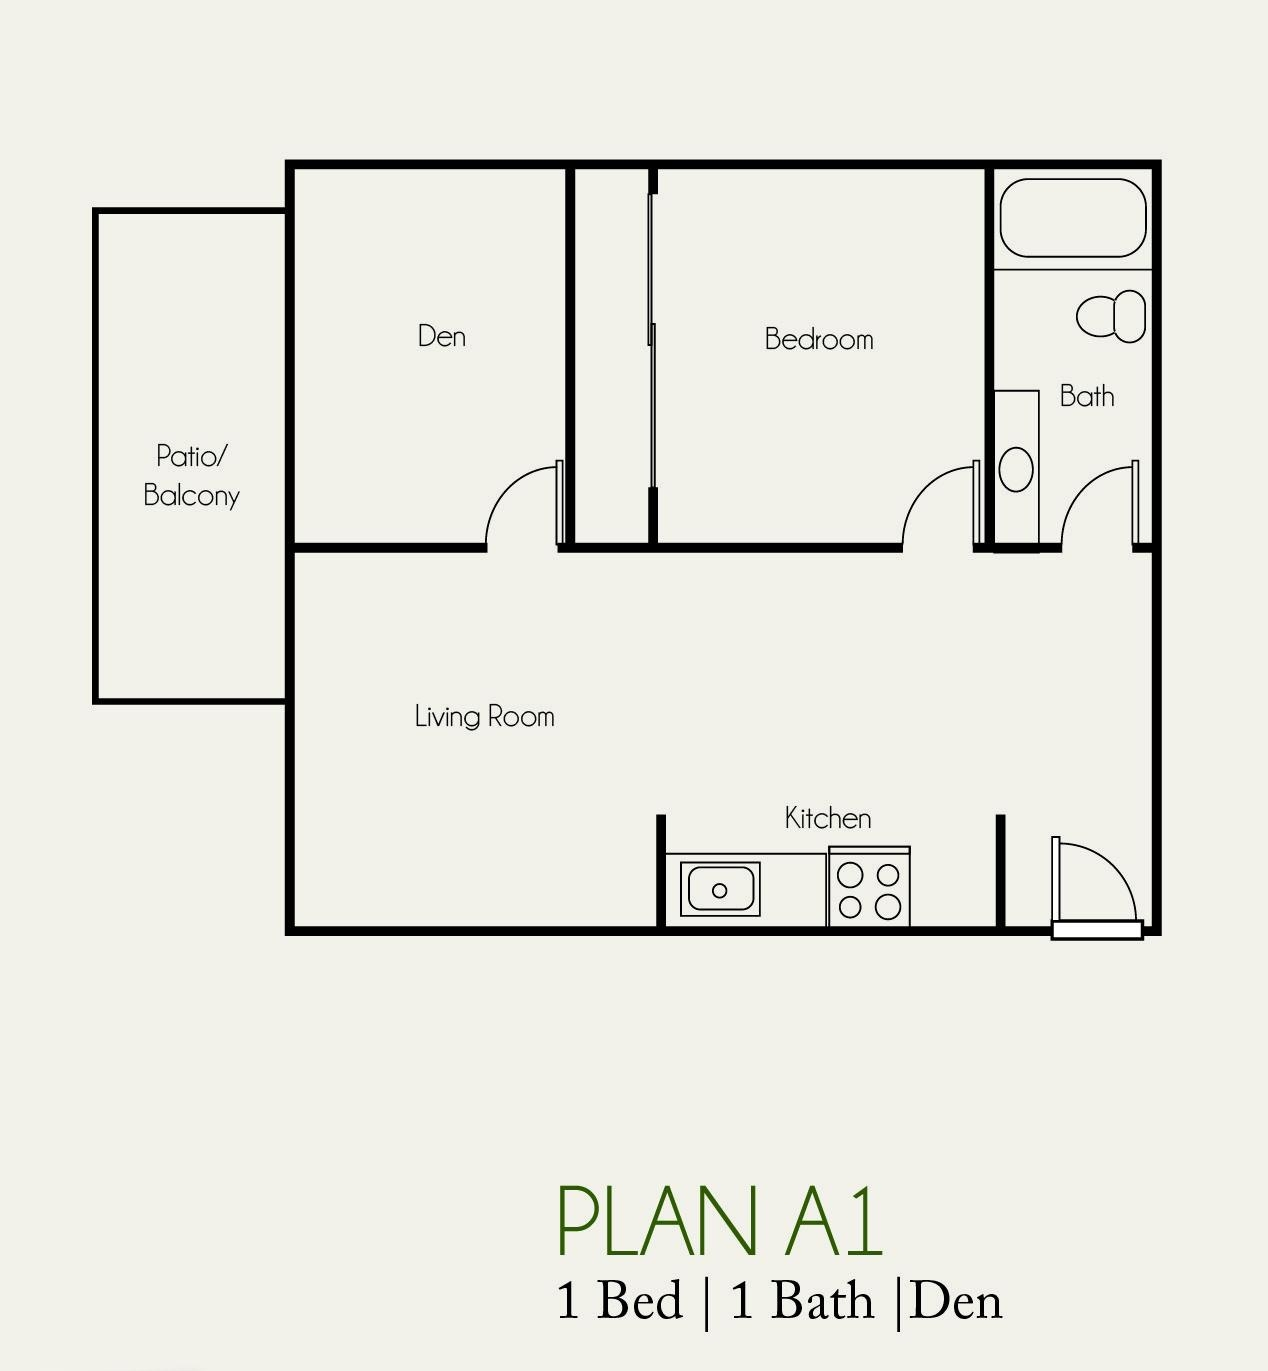 The Landing 1 bedroom | 1 bath plan